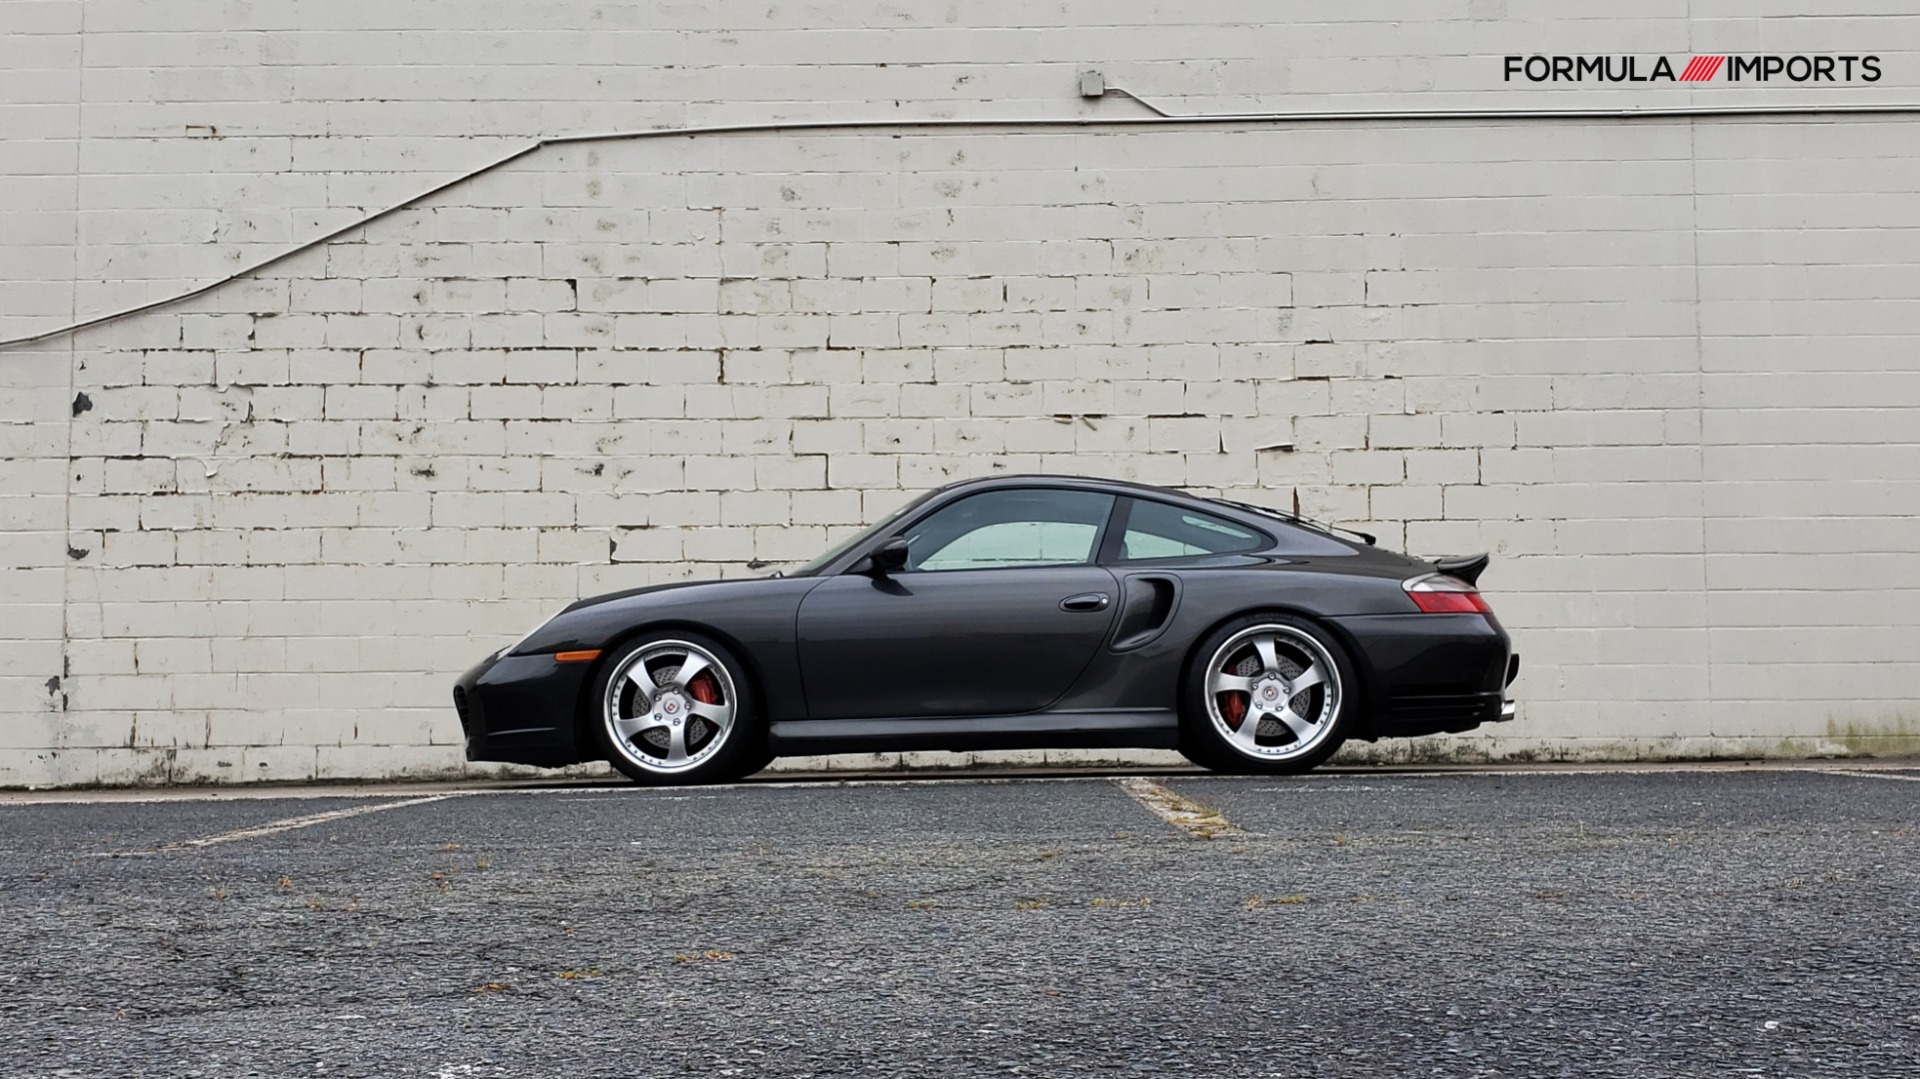 Used 2002 Porsche 911 CARRERA TURBO / 6-SPD MAN / ALPINE / BOSE / PERF UPGRADES for sale $53,995 at Formula Imports in Charlotte NC 28227 79